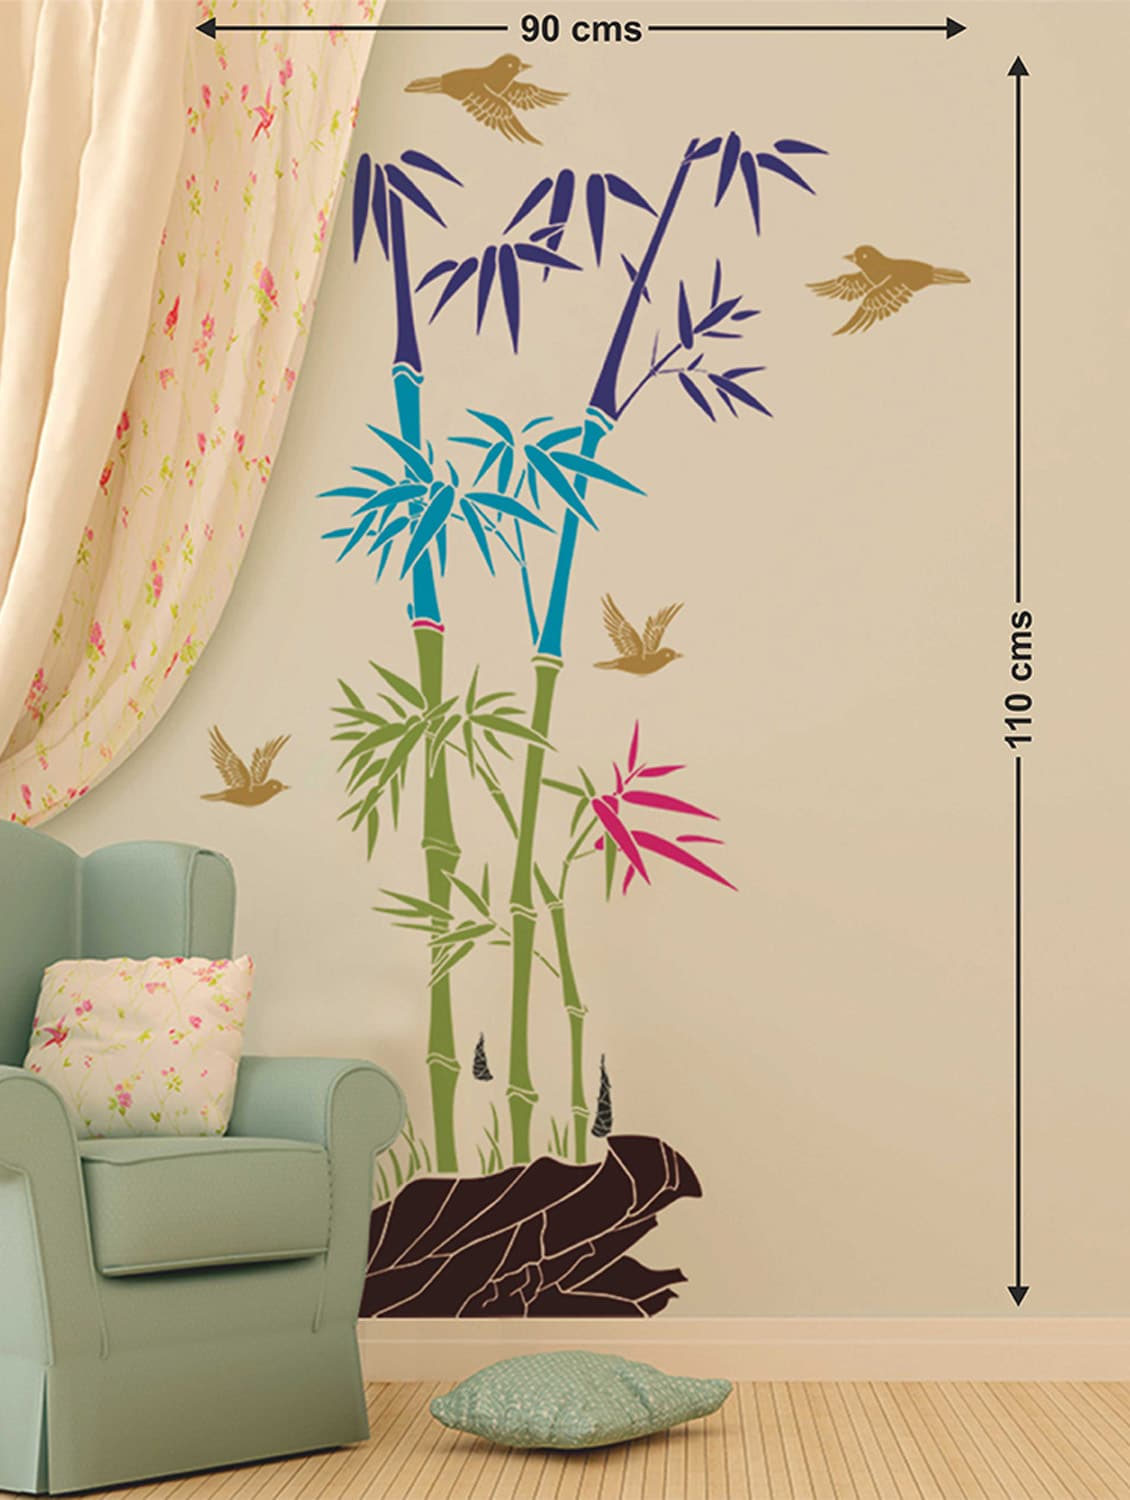 Buy wall stickers bamboo trees colorful with rocks and birds jungle scenery for staircase wall living room for unisex from stikerskart for ₹197 at 40 off